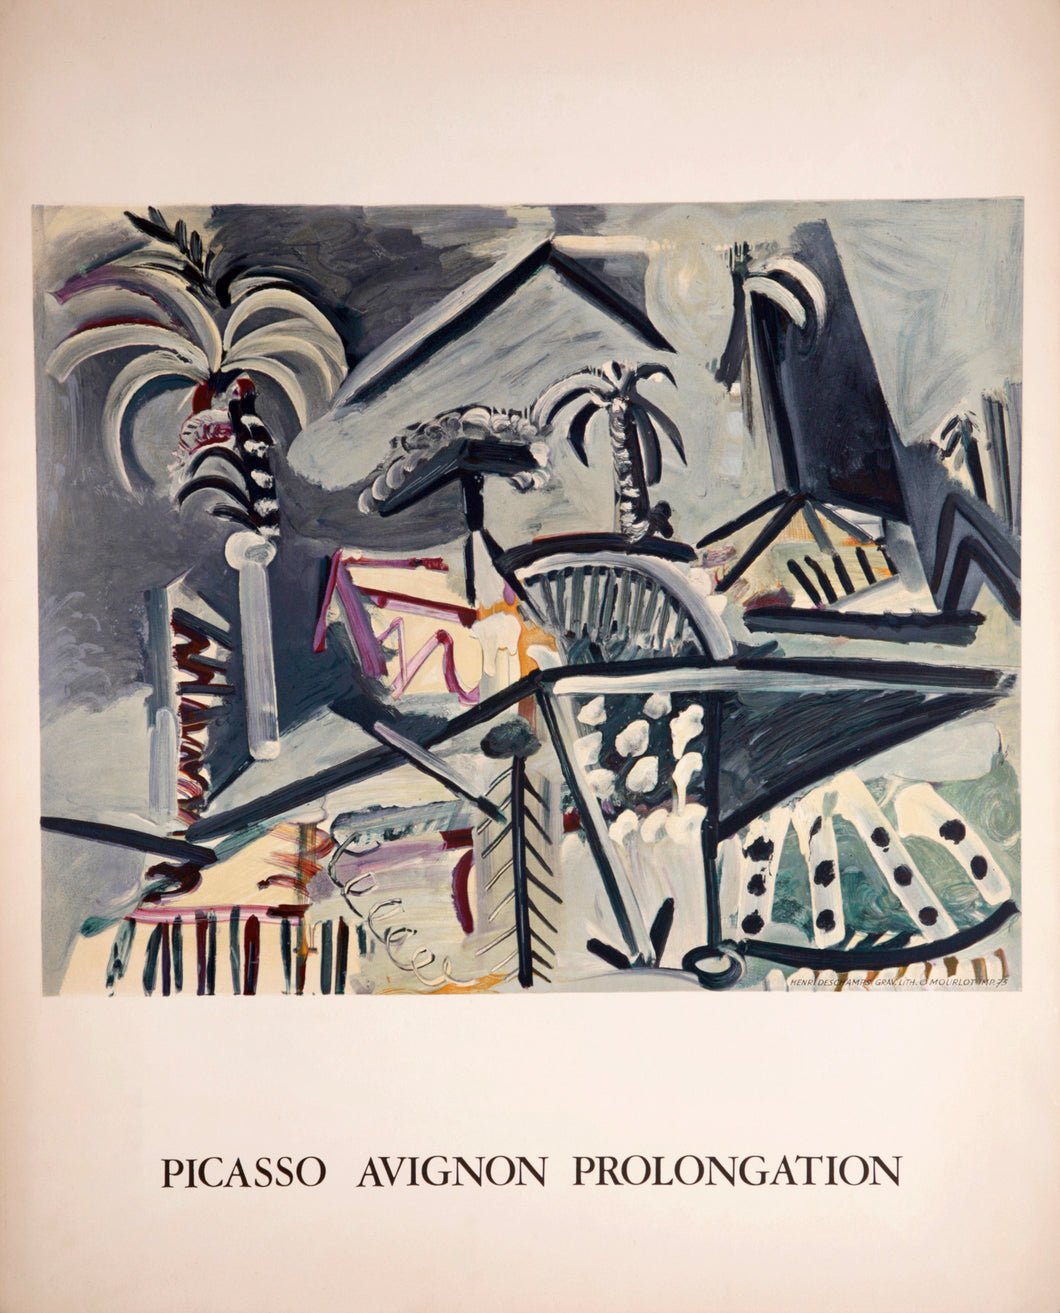 Picasso Avignon Prolongation by Pablo Picasso 1973